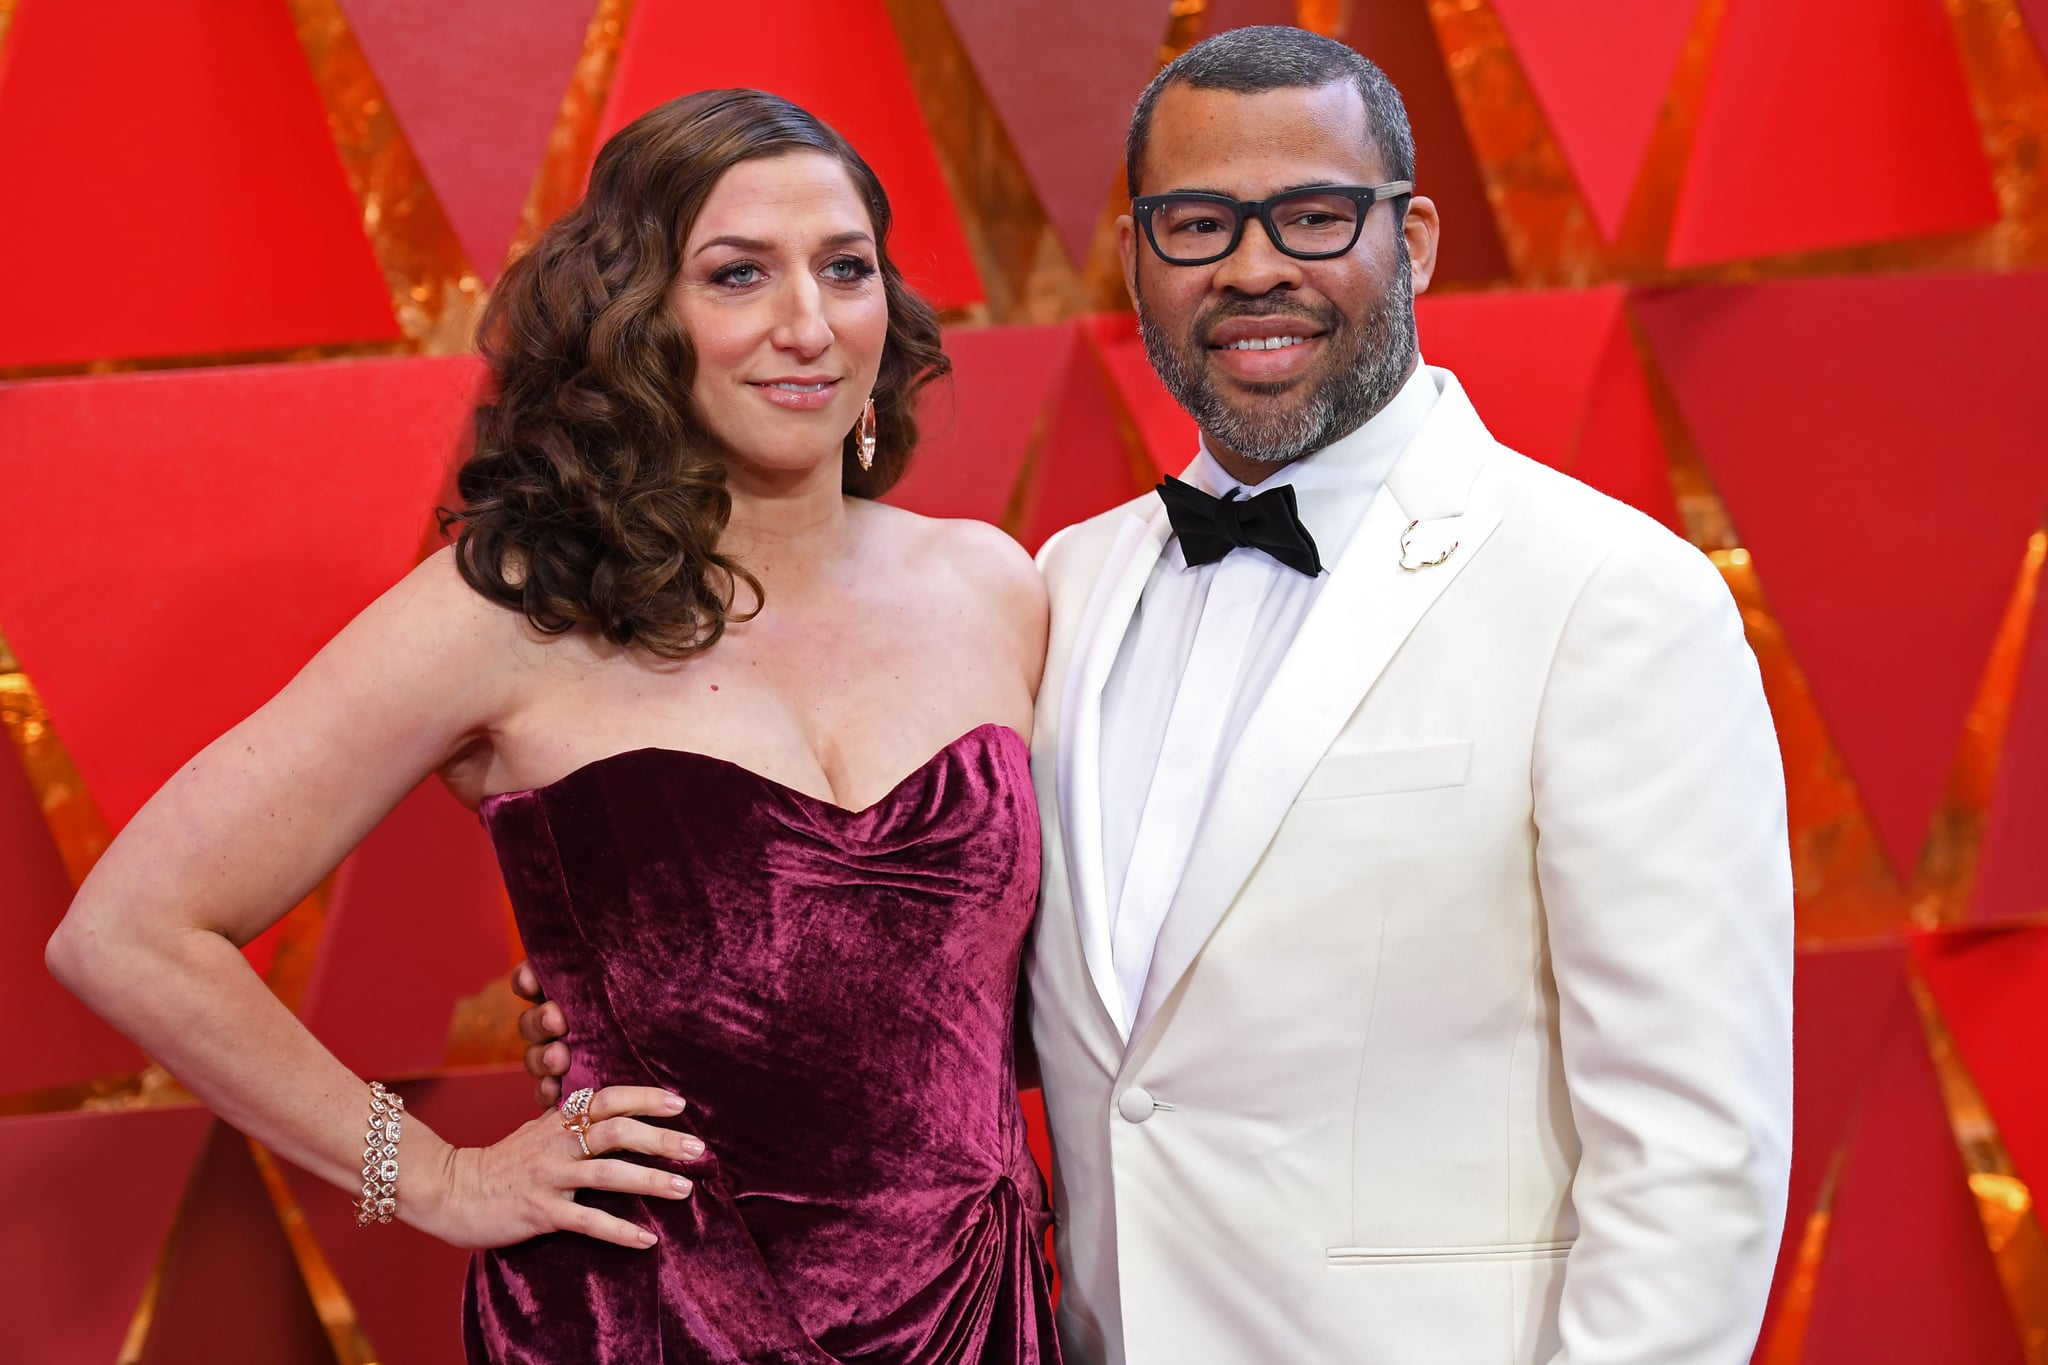 Jordan Peele wins Oscar for best original screenplay for 'Get Out'